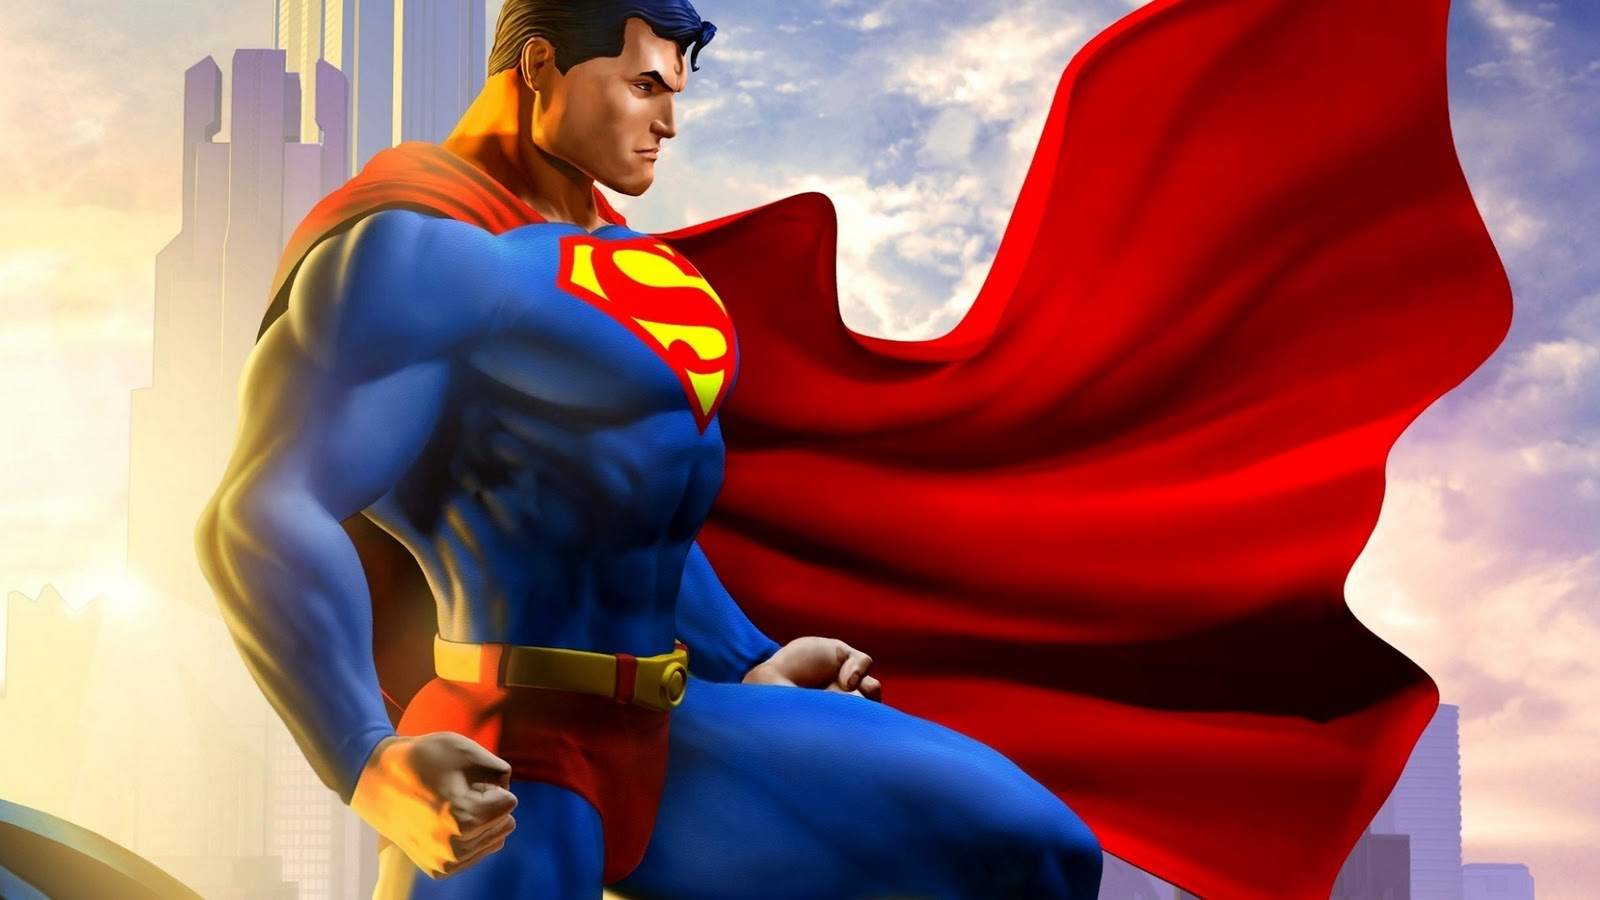 Hd Wallpaper Superman Download Wallpaper DaWallpaperz 1600x900